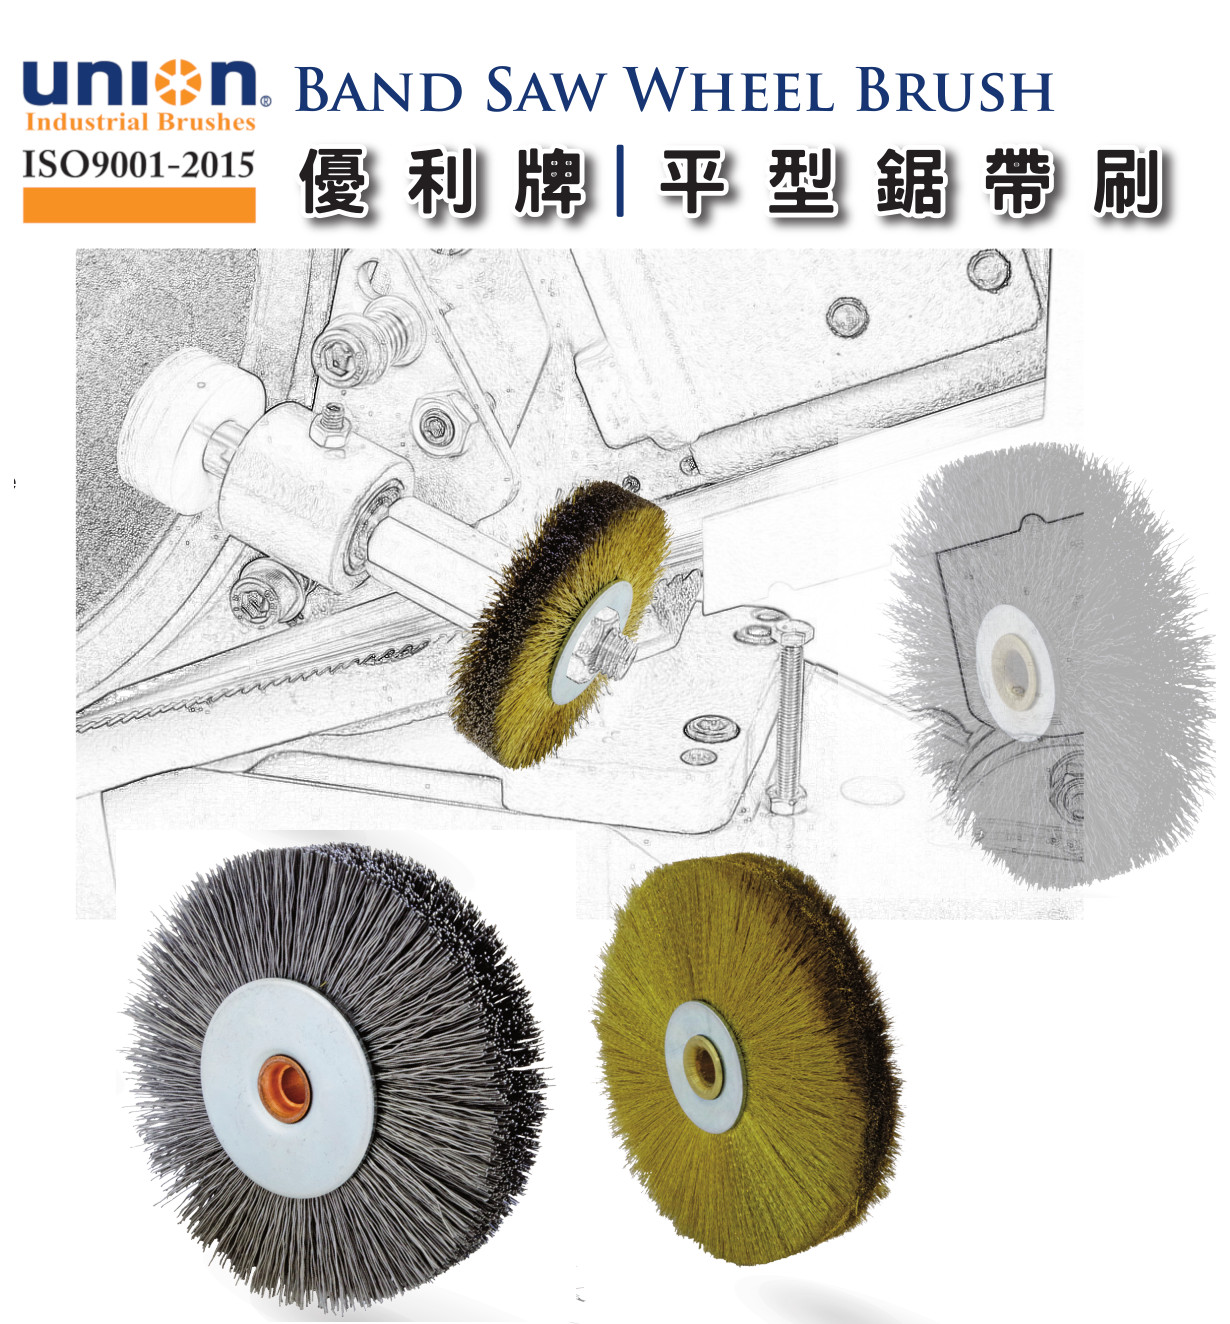 UNION BRUSH- Band Saw Wheel Brush